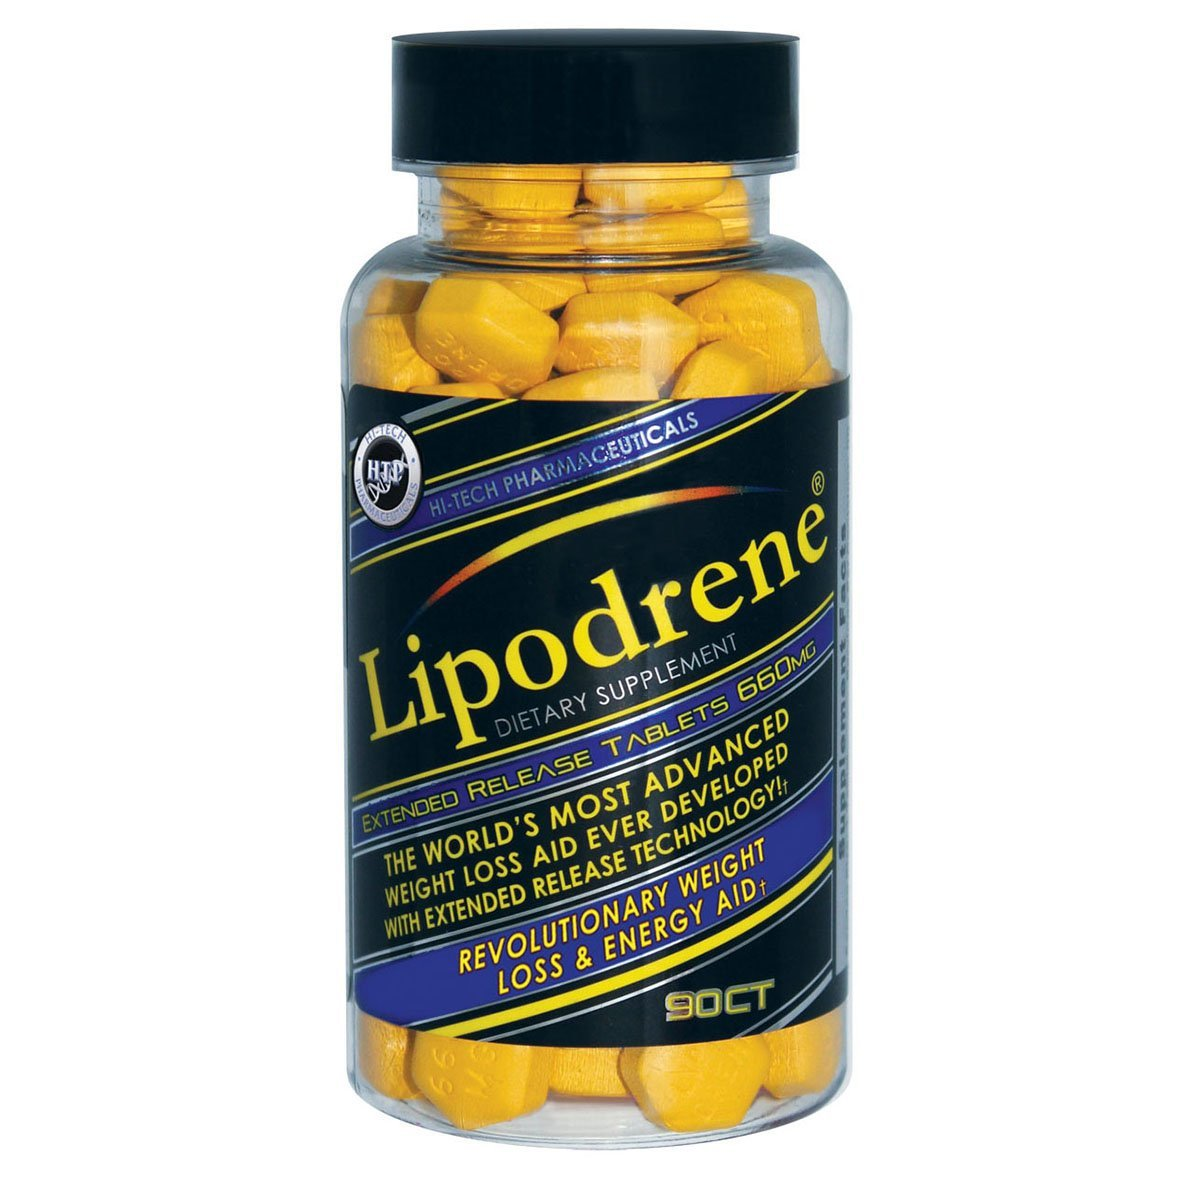 Lipodrene Hardcore 25g Ephedra Best Diet Aid Lose Weight Fast